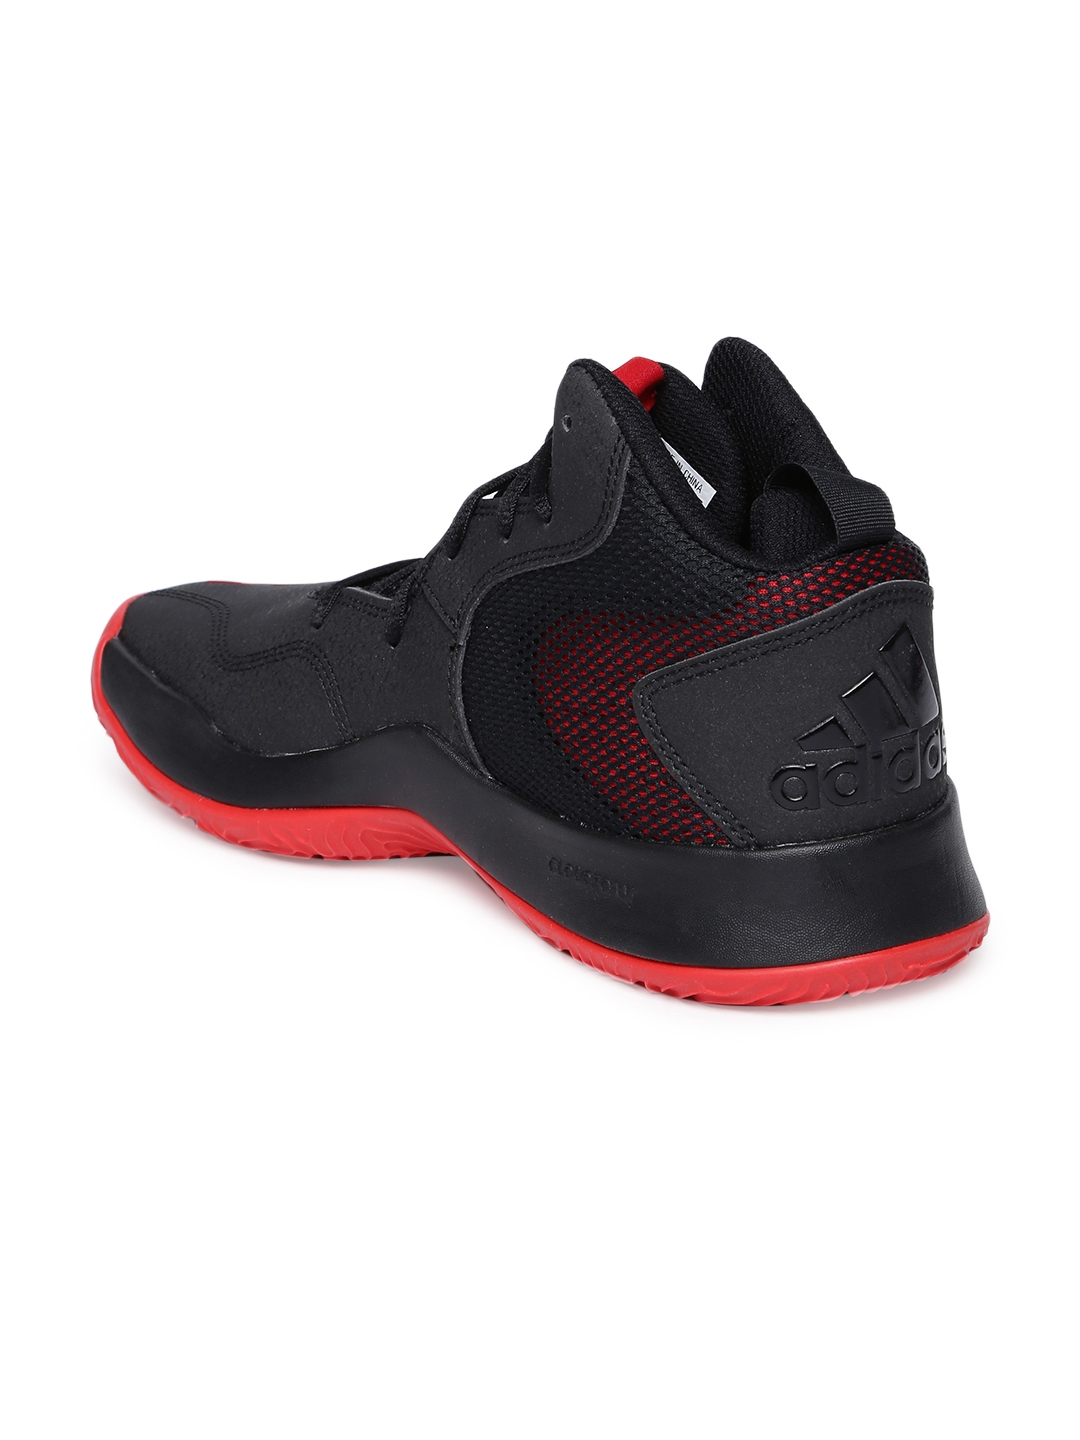 feb65f4c633 Buy ADIDAS Men Black Crazy Team II Basketball Shoes - Sports Shoes ...